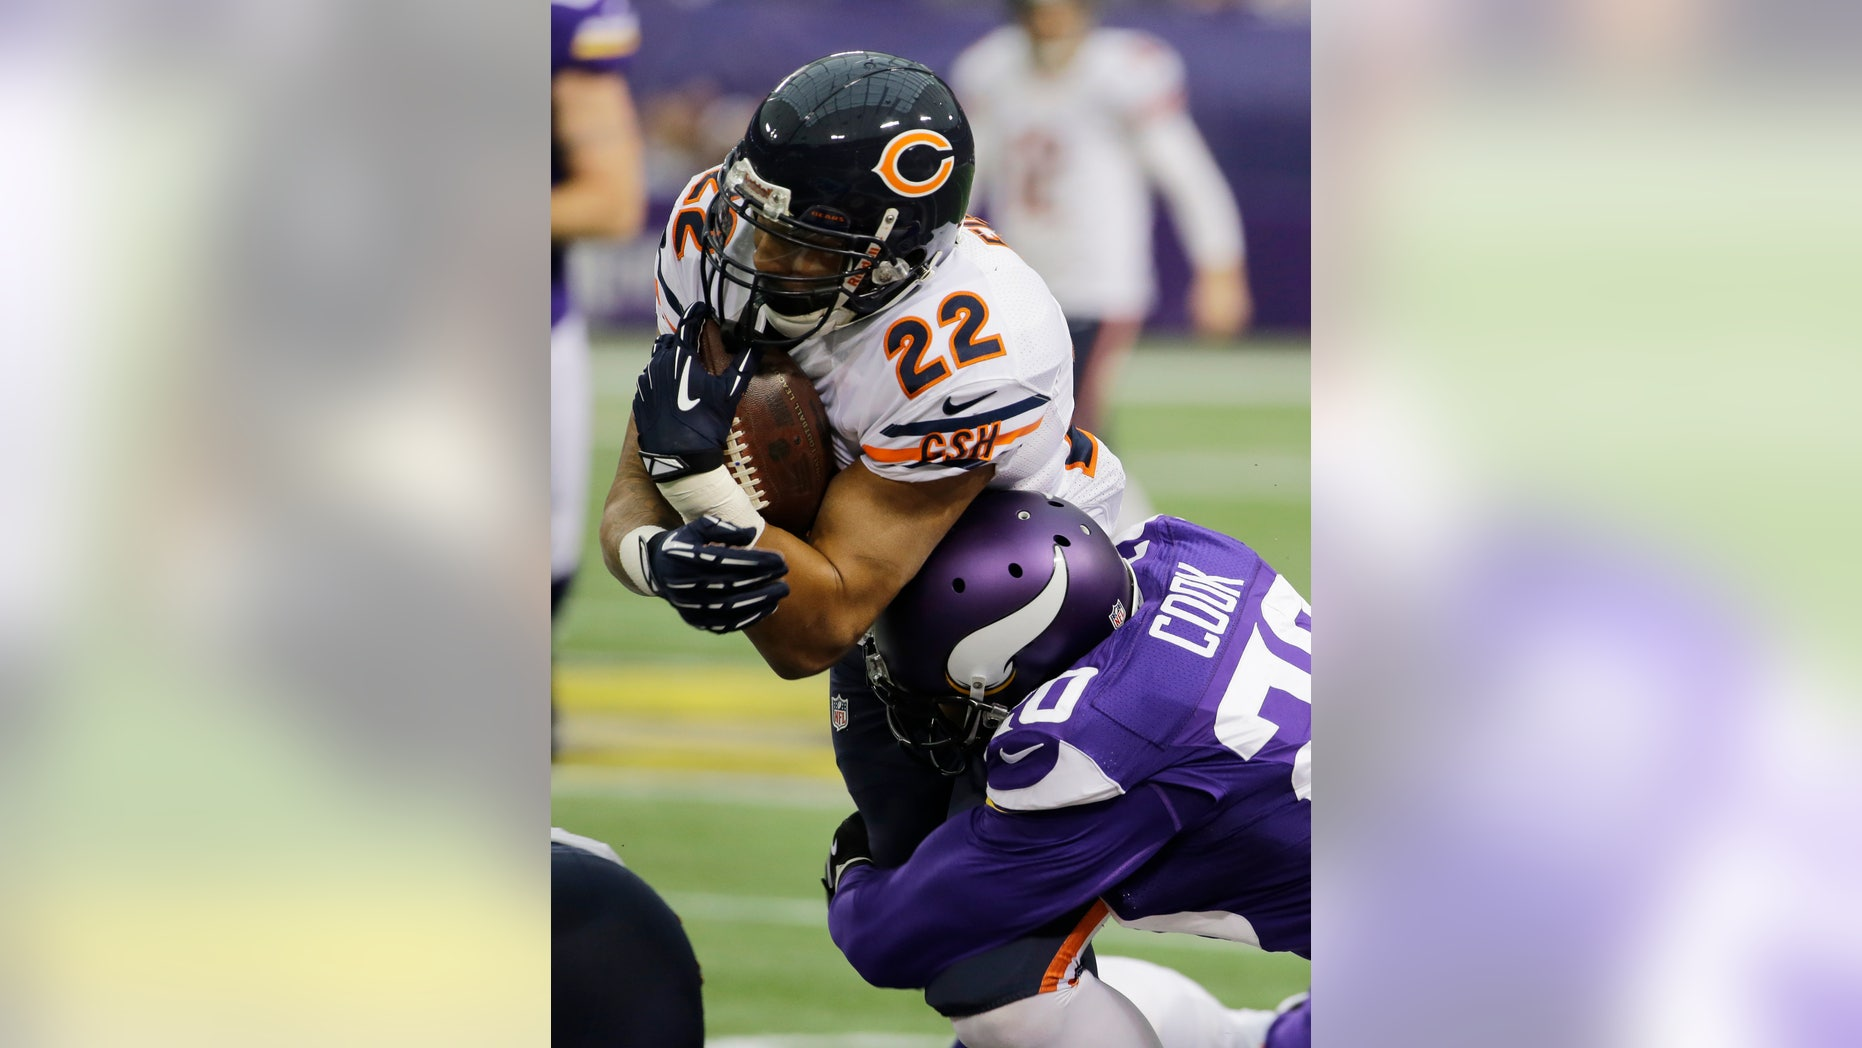 Chicago Bears running back Matt Forte (22) is tackled by Minnesota Vikings cornerback Chris Cook during the first half of an NFL football game on Sunday, Dec. 1, 2013, in Minneapolis. (AP Photo/Ann Heisenfelt)